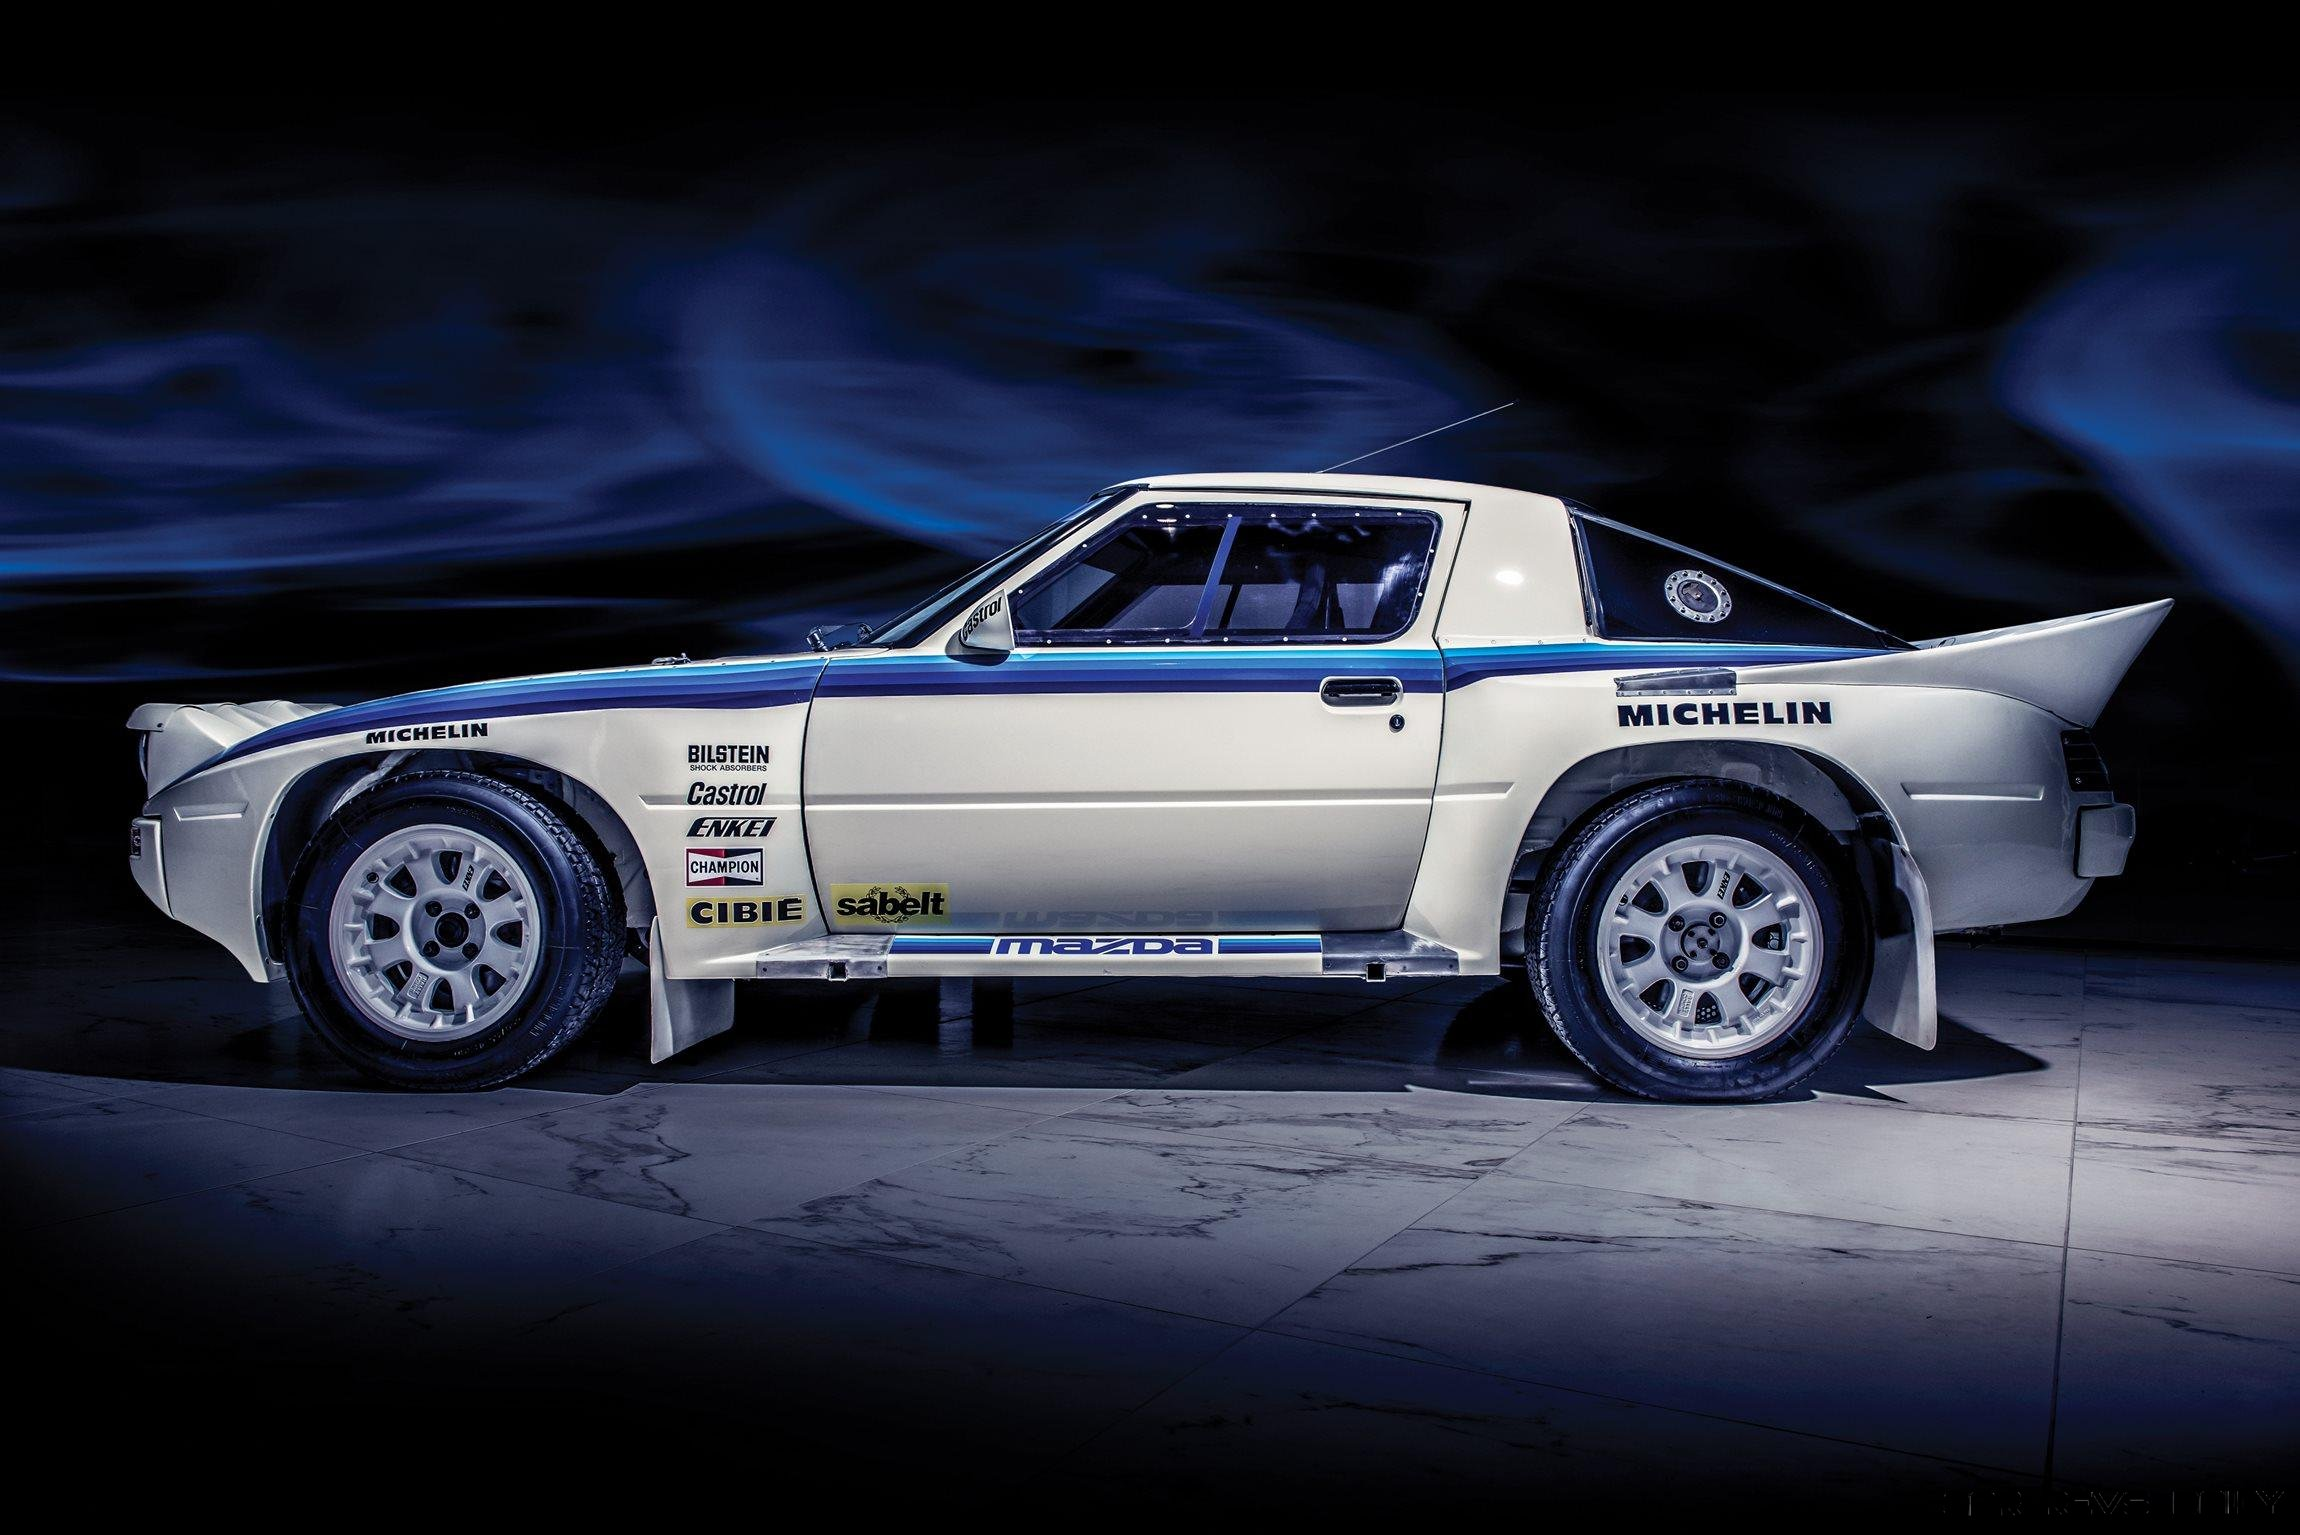 1985 mazda rx 7 evo group b works rally car rm london 2017. Black Bedroom Furniture Sets. Home Design Ideas